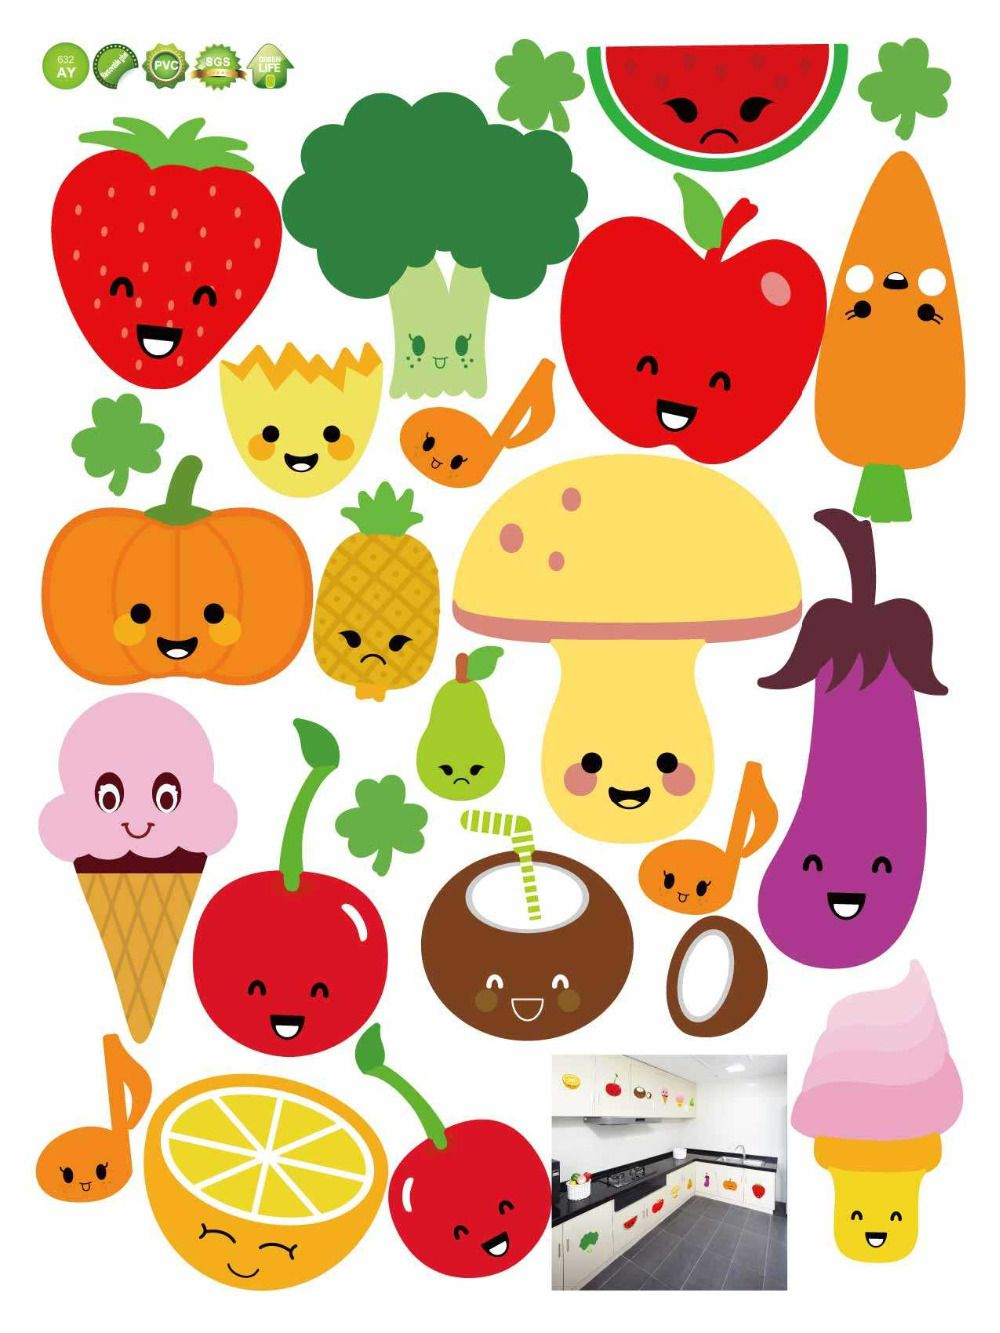 Kitchen Fruit Wall Sticker Decal Kitchenware Wall Tile Stickers for ...